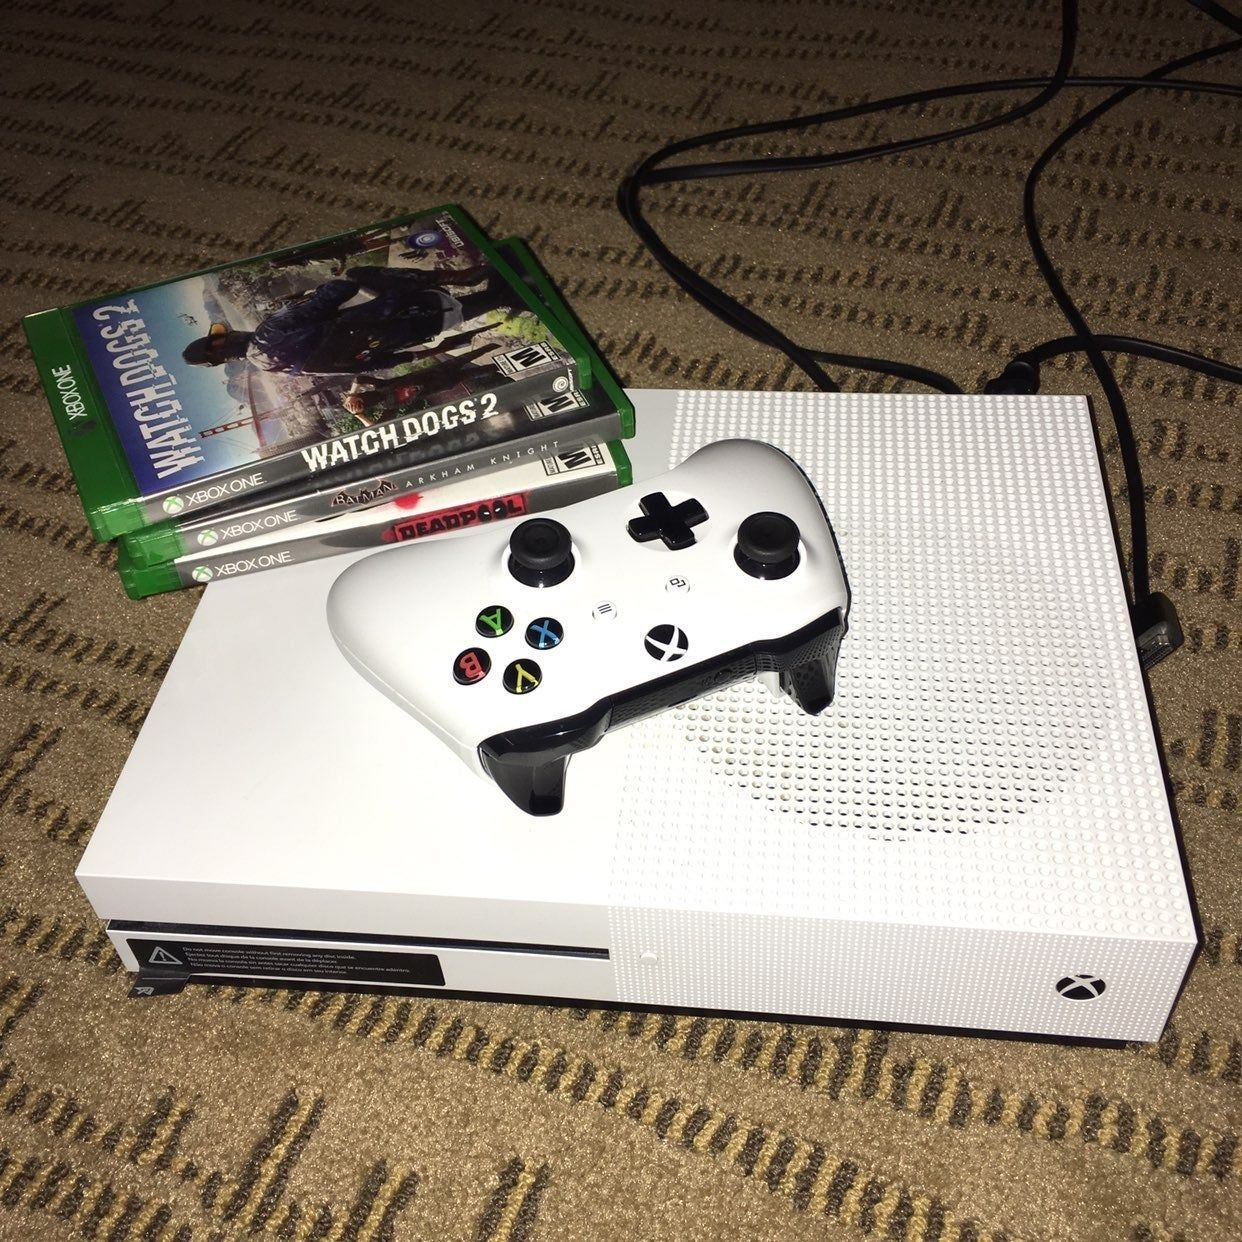 Xbox One S 500gb With 3 Games Watch Dogs 2 Batman Arkham Knight And Deadpool Comes With The Original Console Box And All The Cords Including Warranty Man